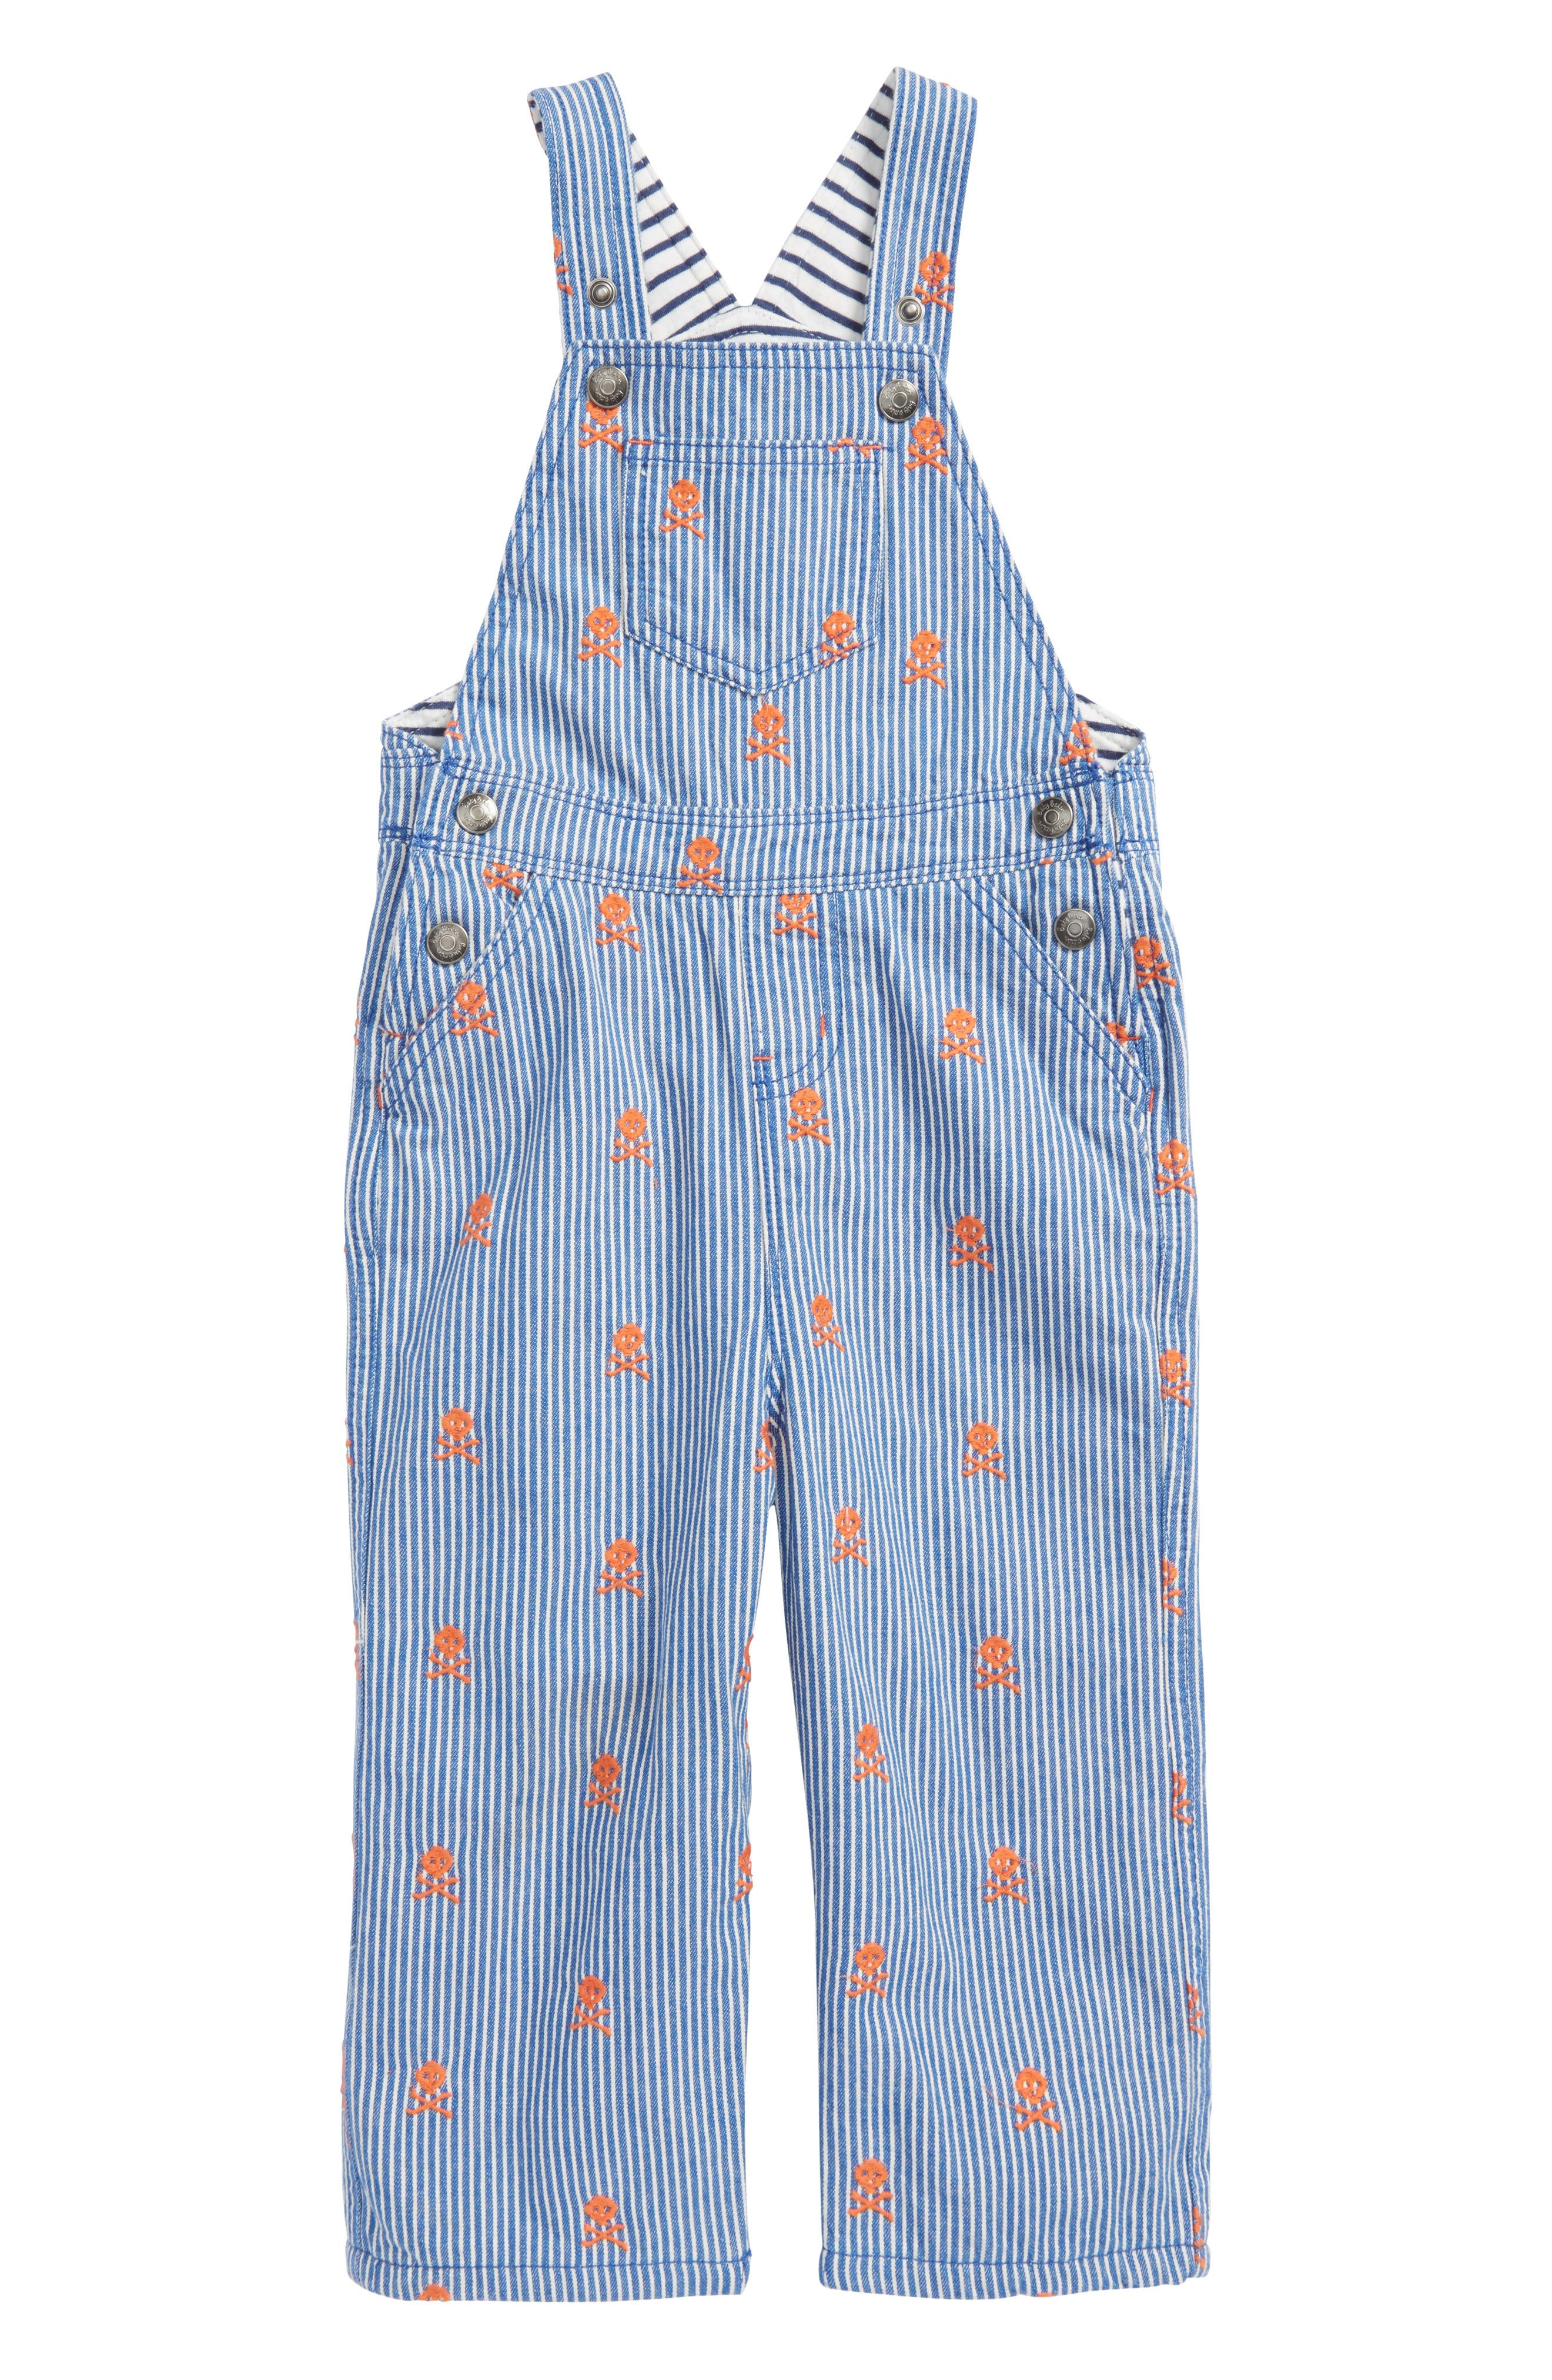 Classic Dungaree Overalls,                             Main thumbnail 1, color,                             424